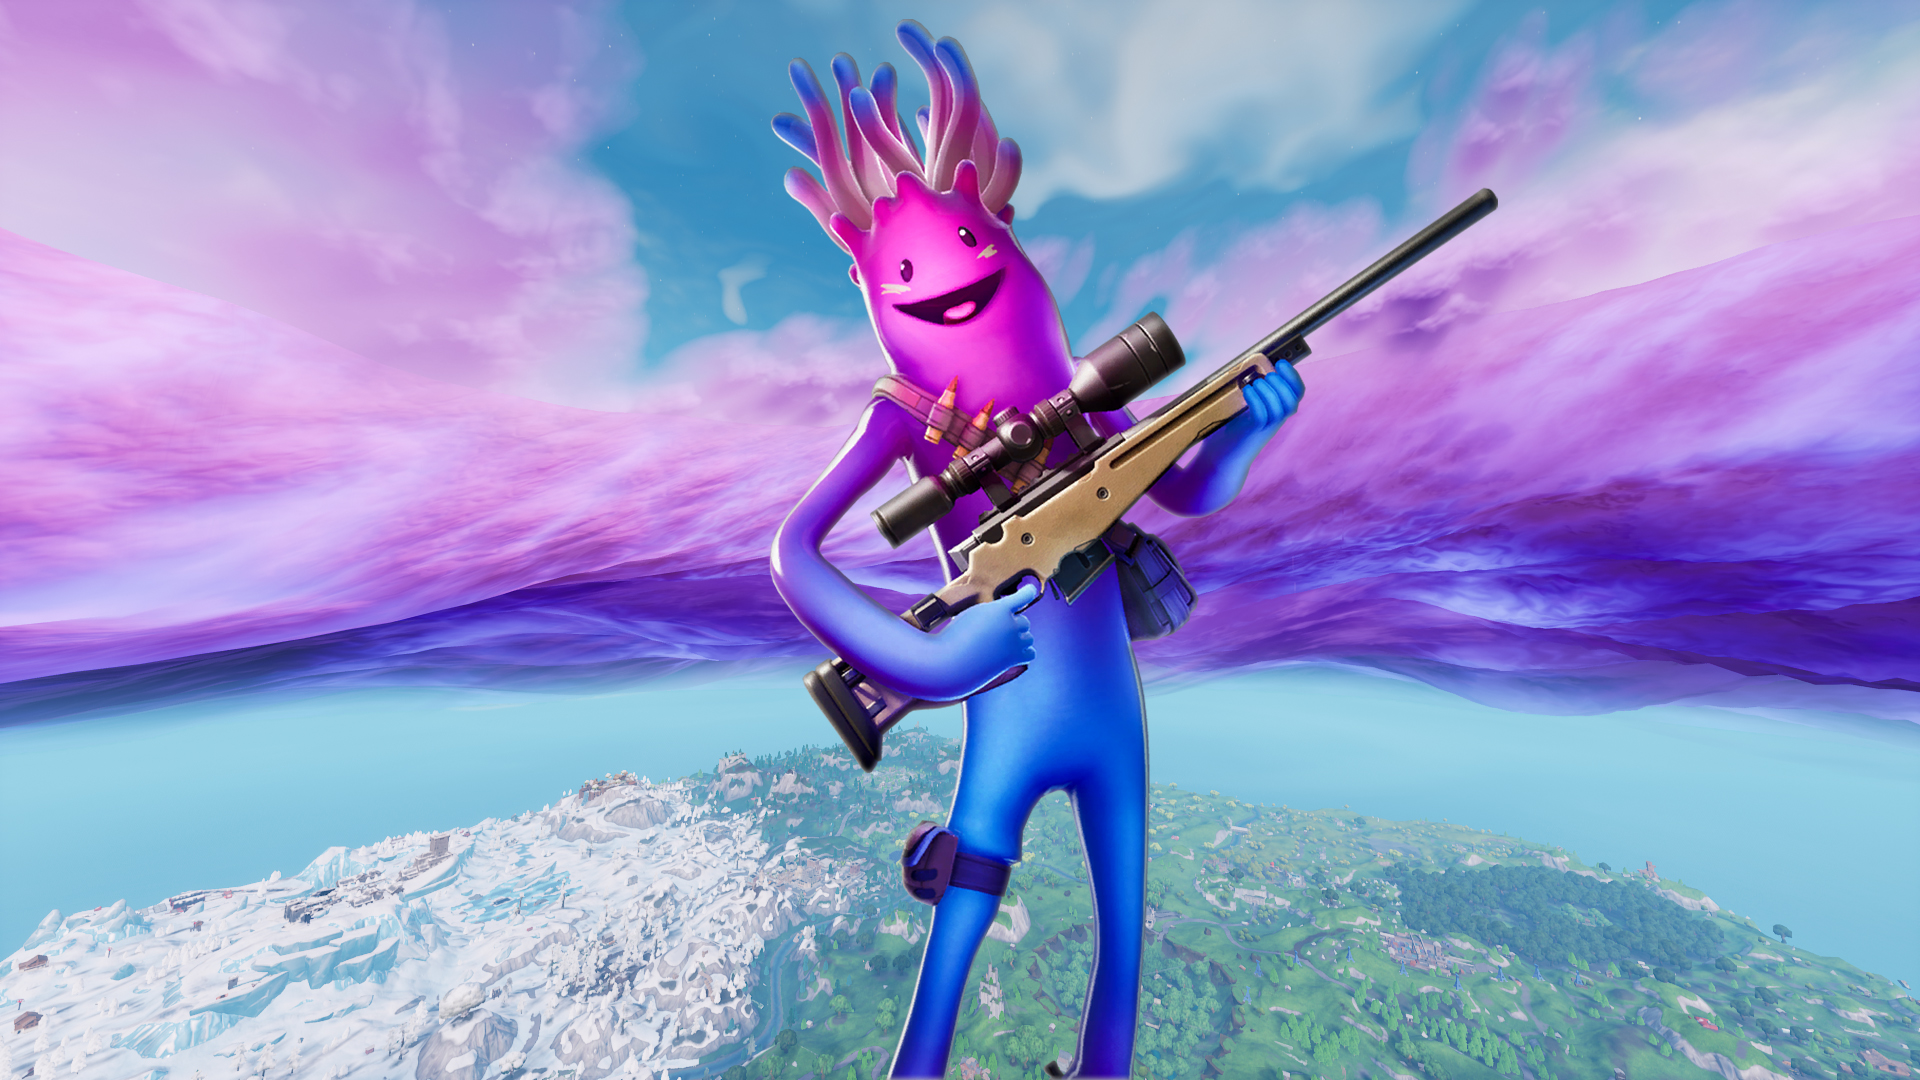 Zero Fortnite Skin Wallpapers All Details Mega Themes